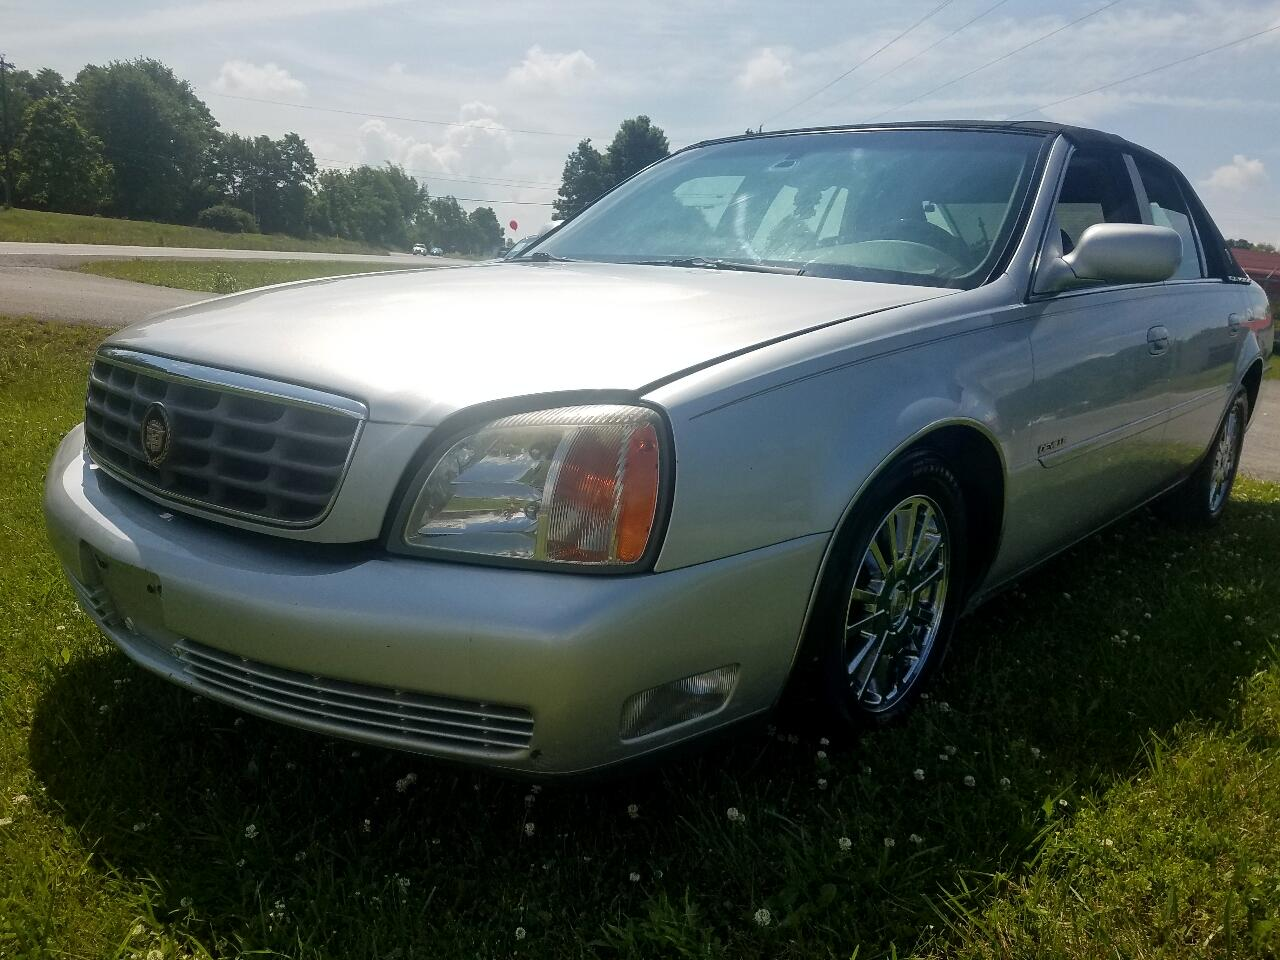 used 2001 cadillac deville dhs for sale in stanford ky 40484 150 auto sales 150 auto sales